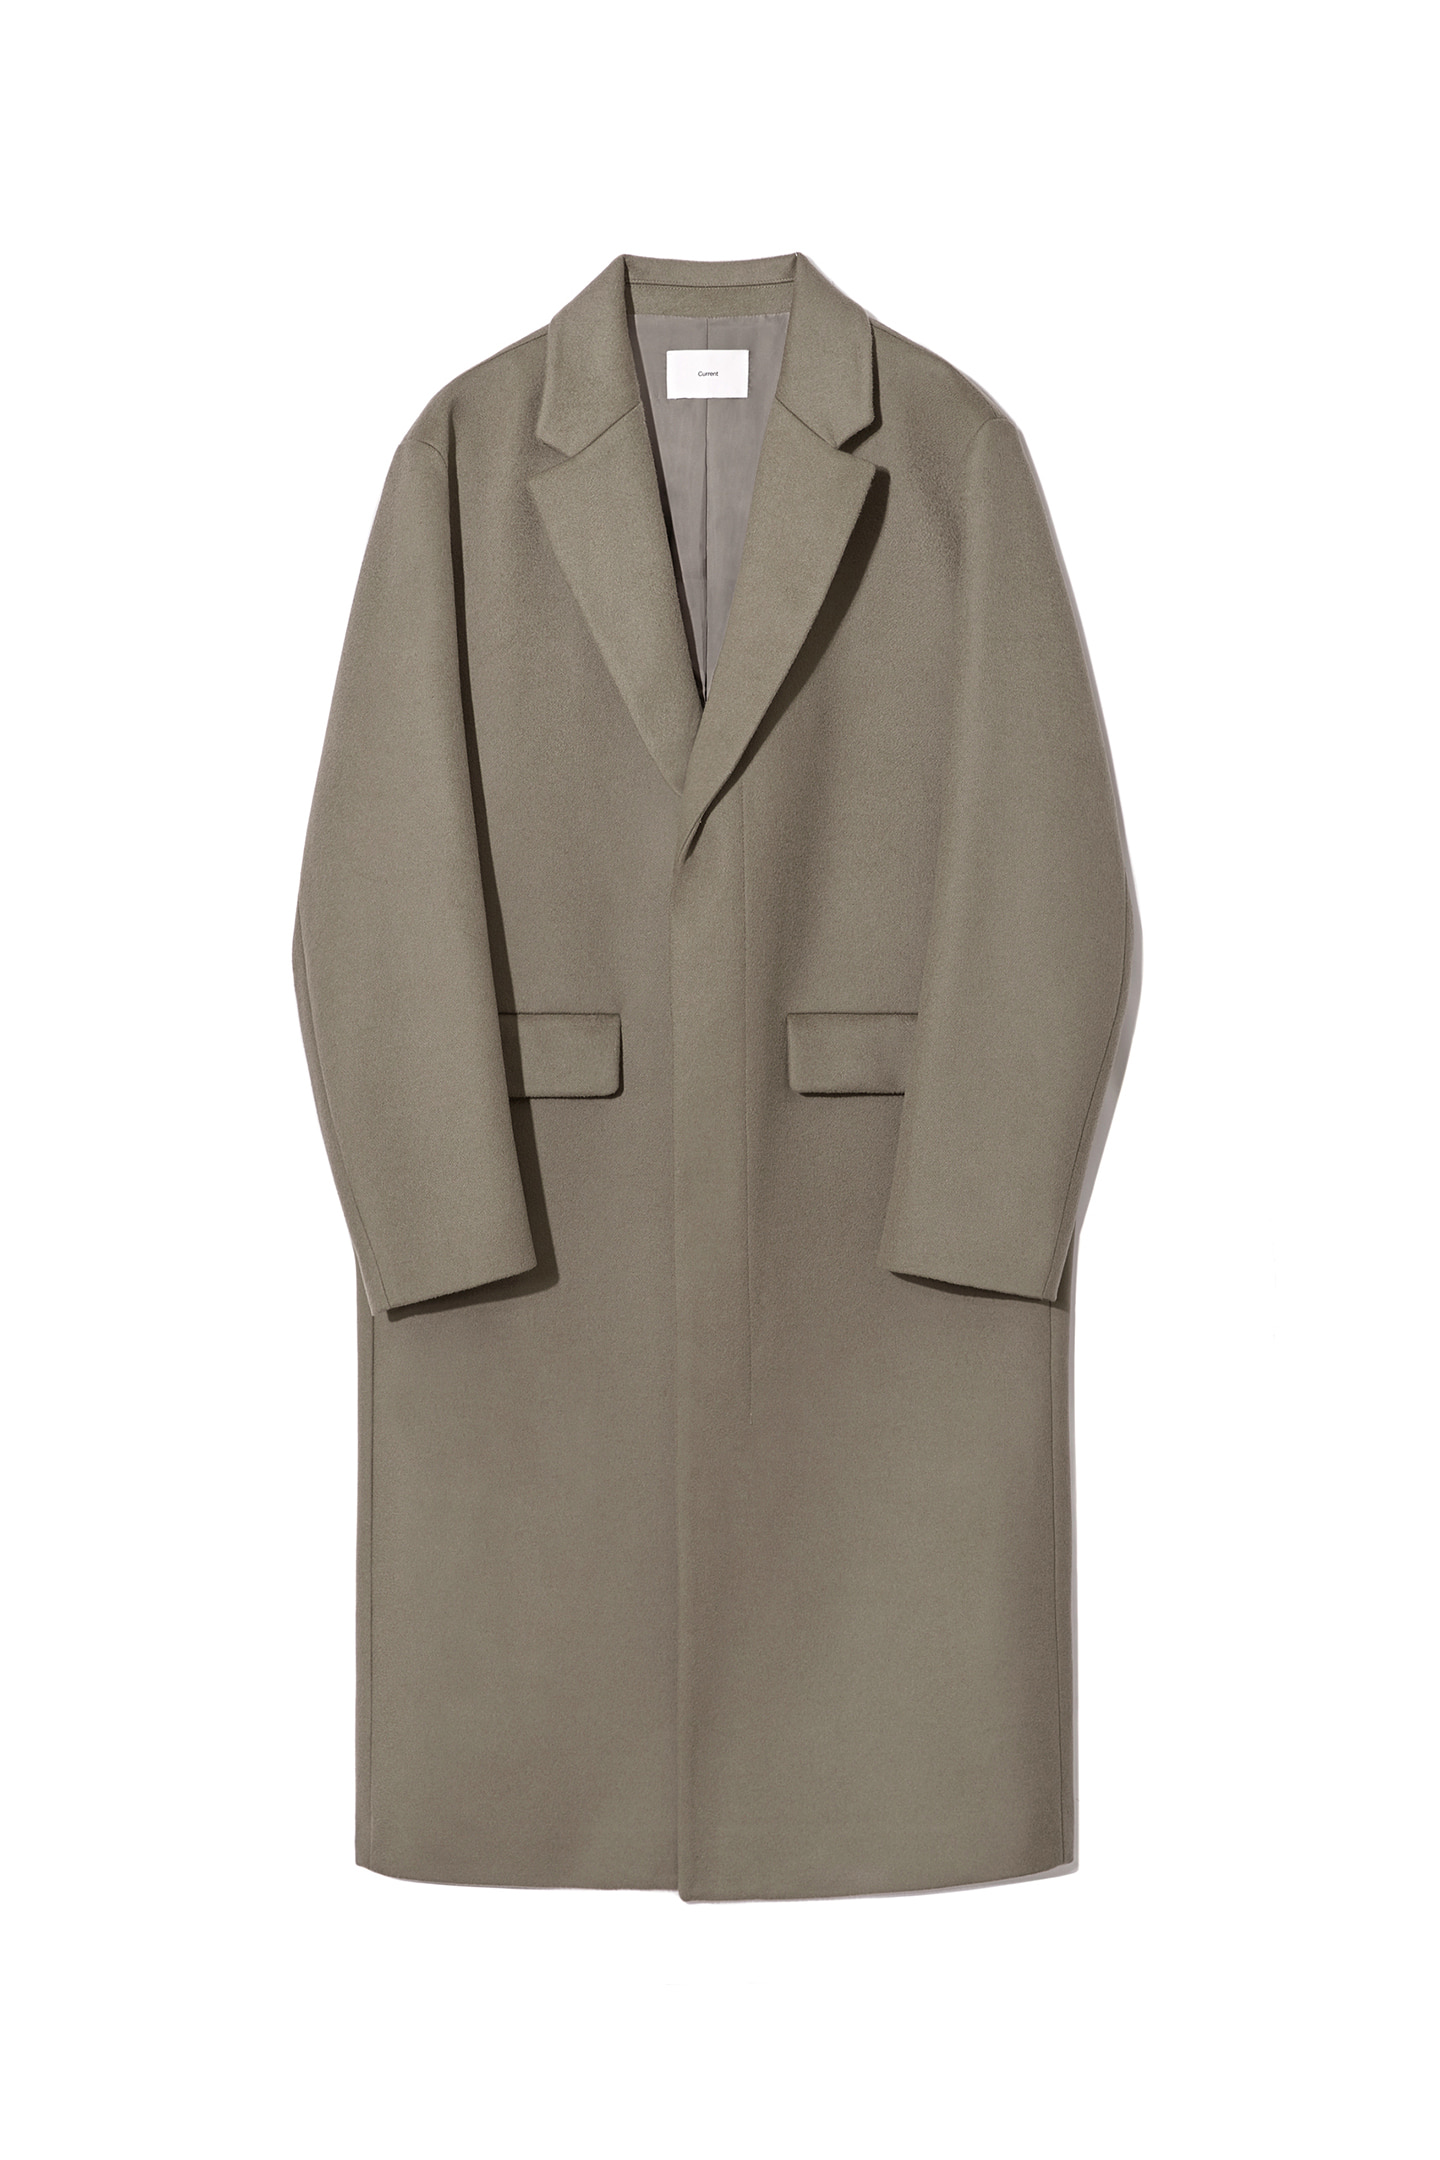 Cashmere Single Coat Men [Khaki Beige]